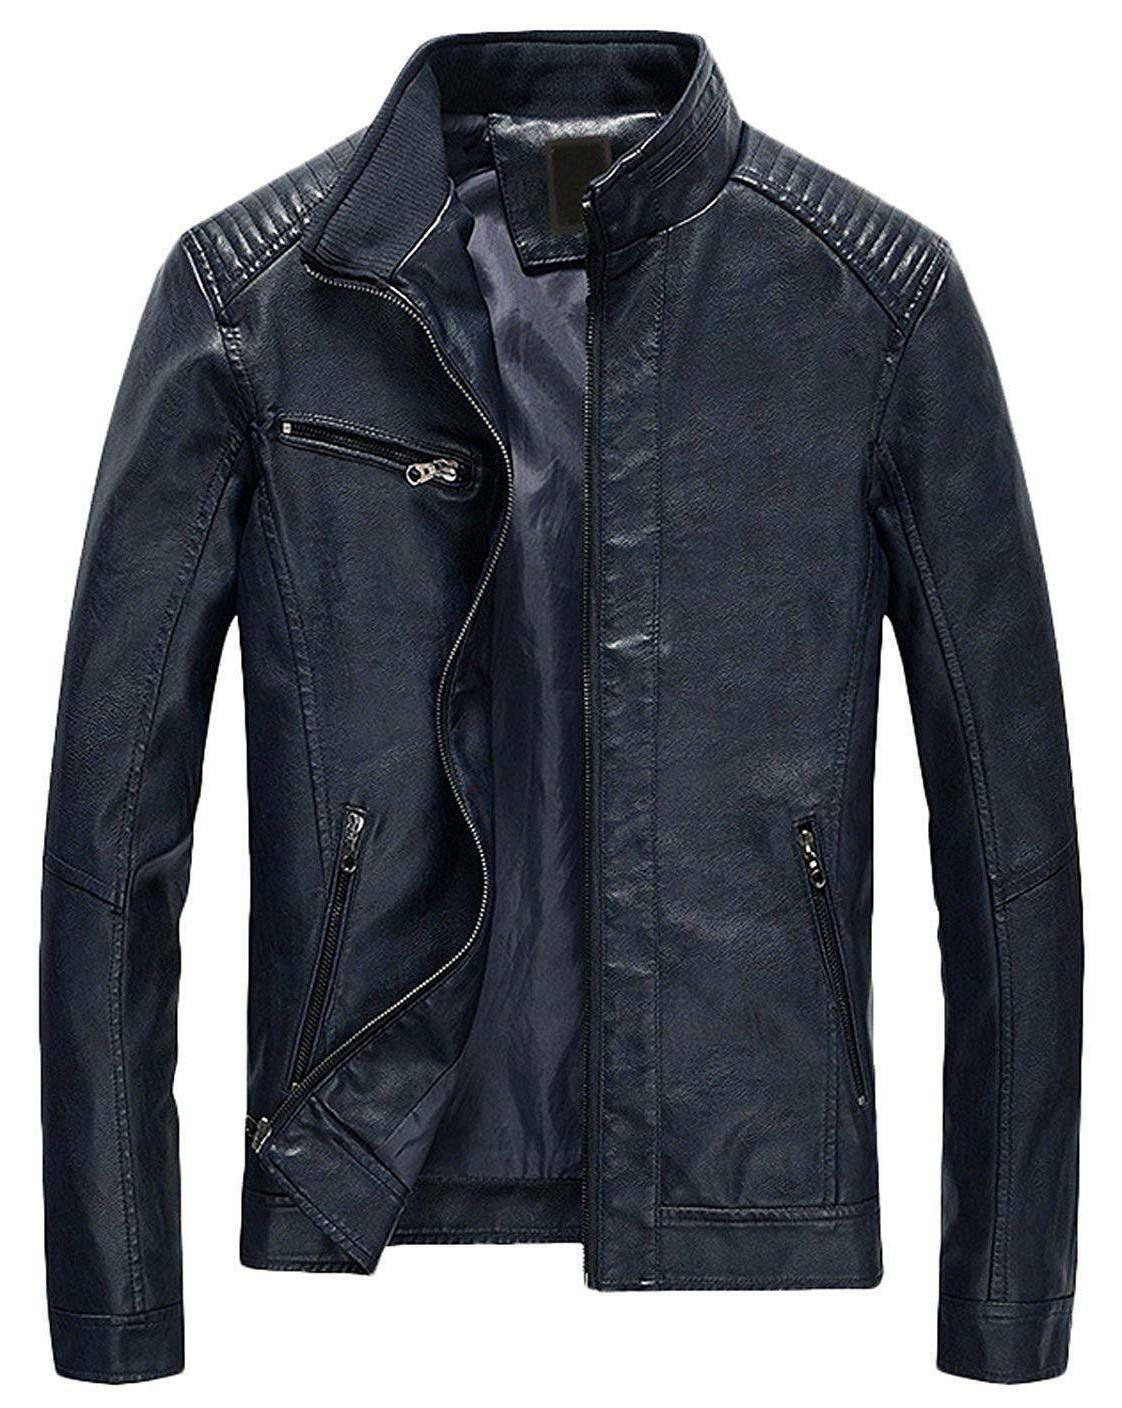 Youhan Men's Casual Zip Up Leather